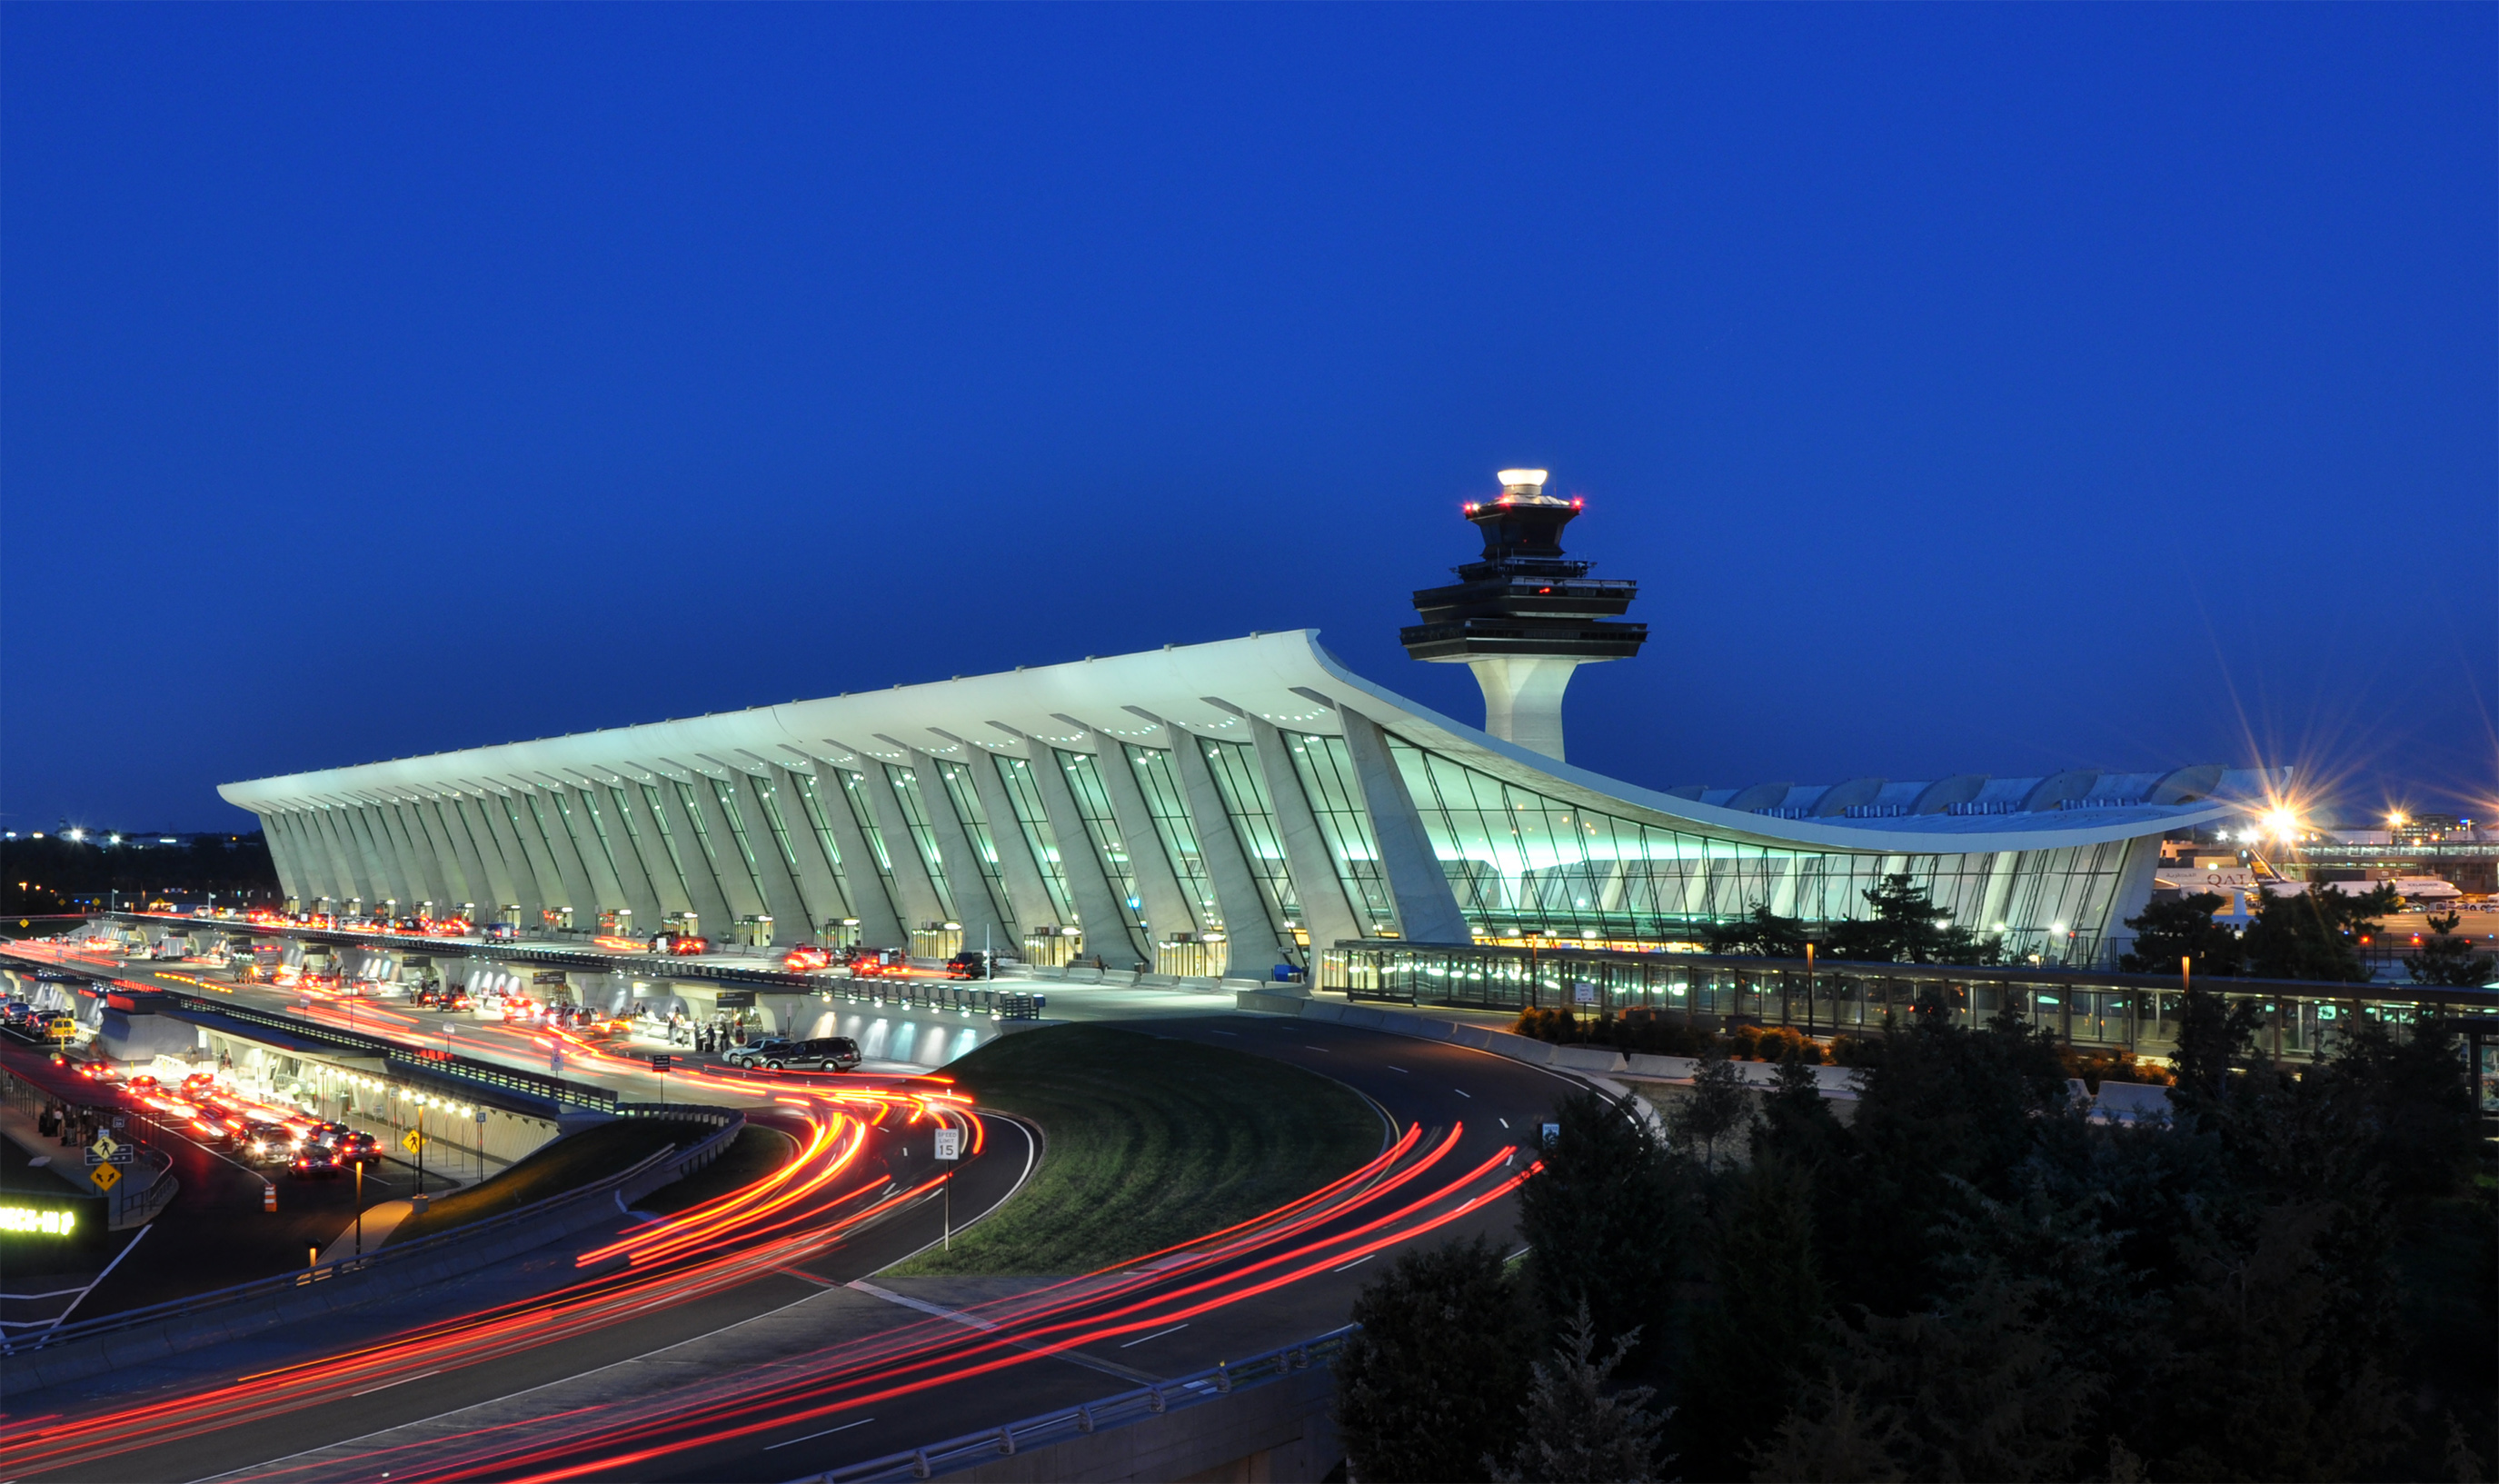 Outside view of Dulles International Airport